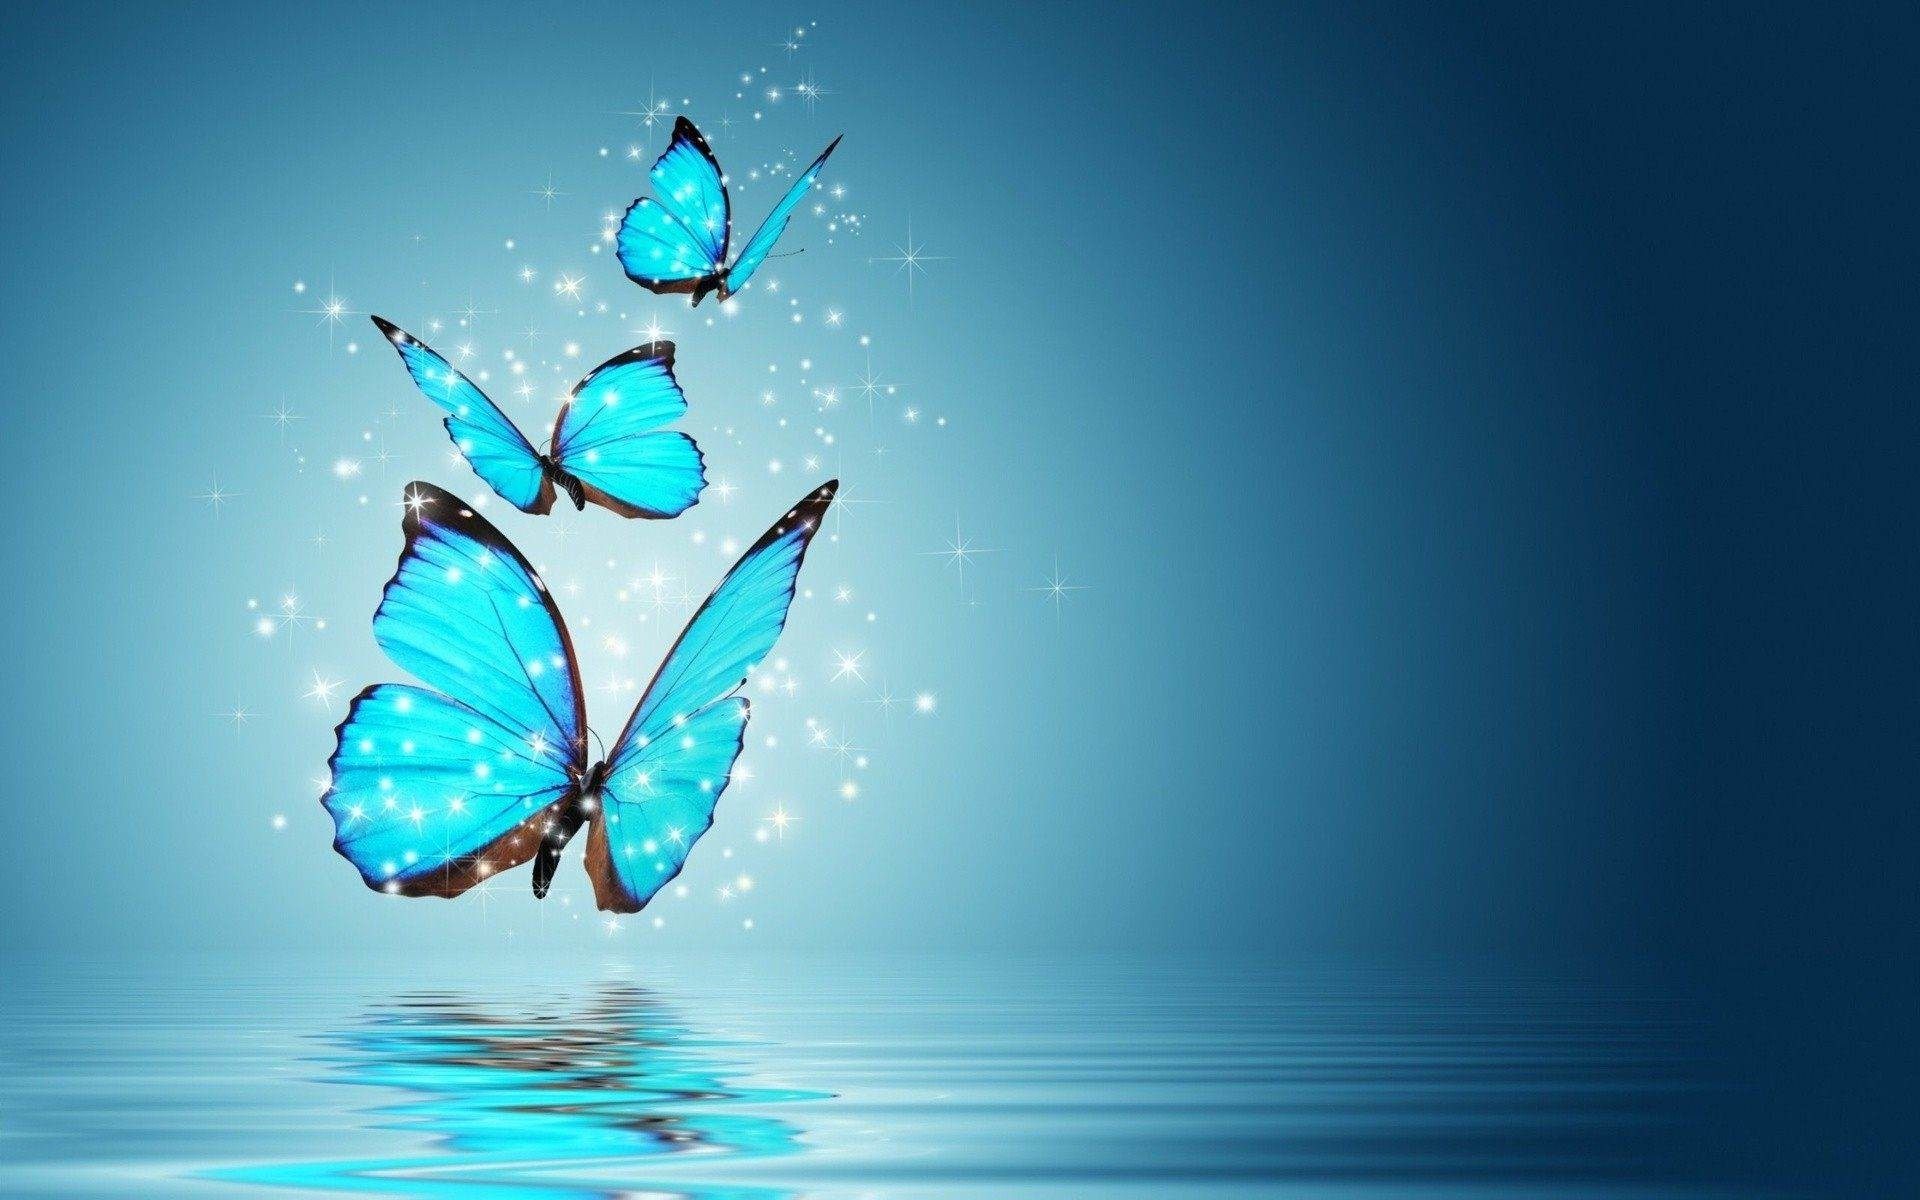 Download Free High Quality Butterfly Wallpaper The Quotes Land 1920×1200  Butterfly Picture | Adorable